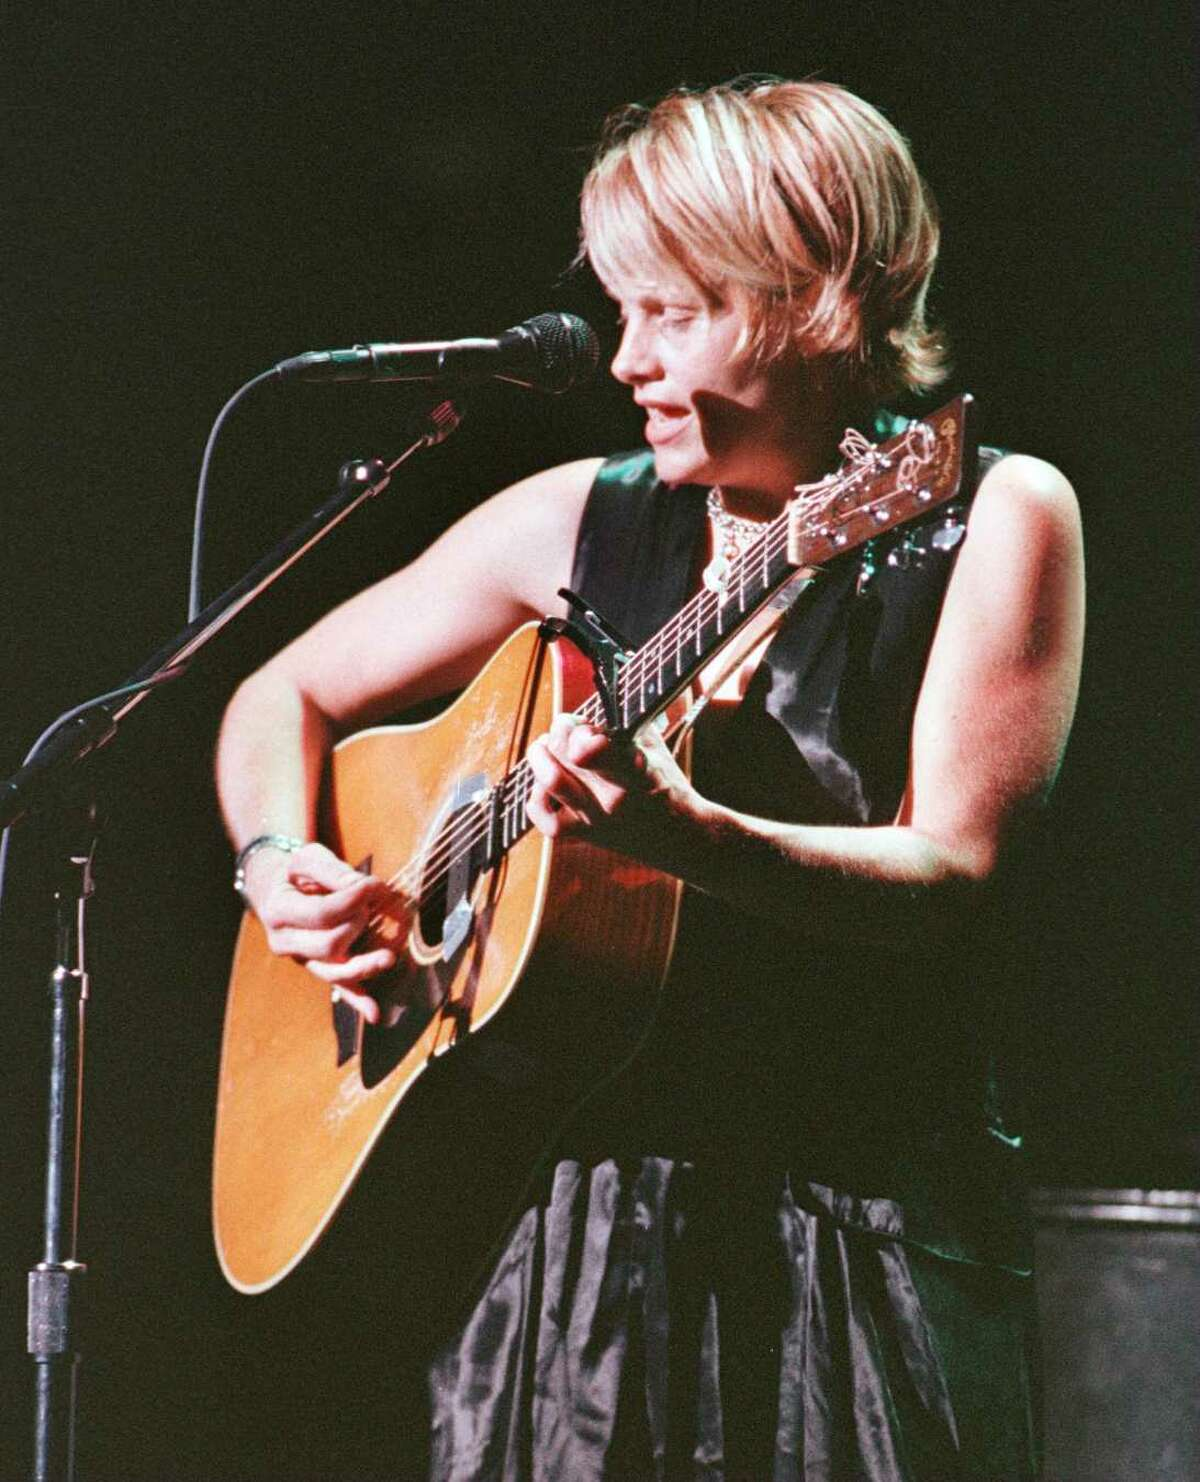 Shawn Colvin performs at SPAC, August 4, 1996.